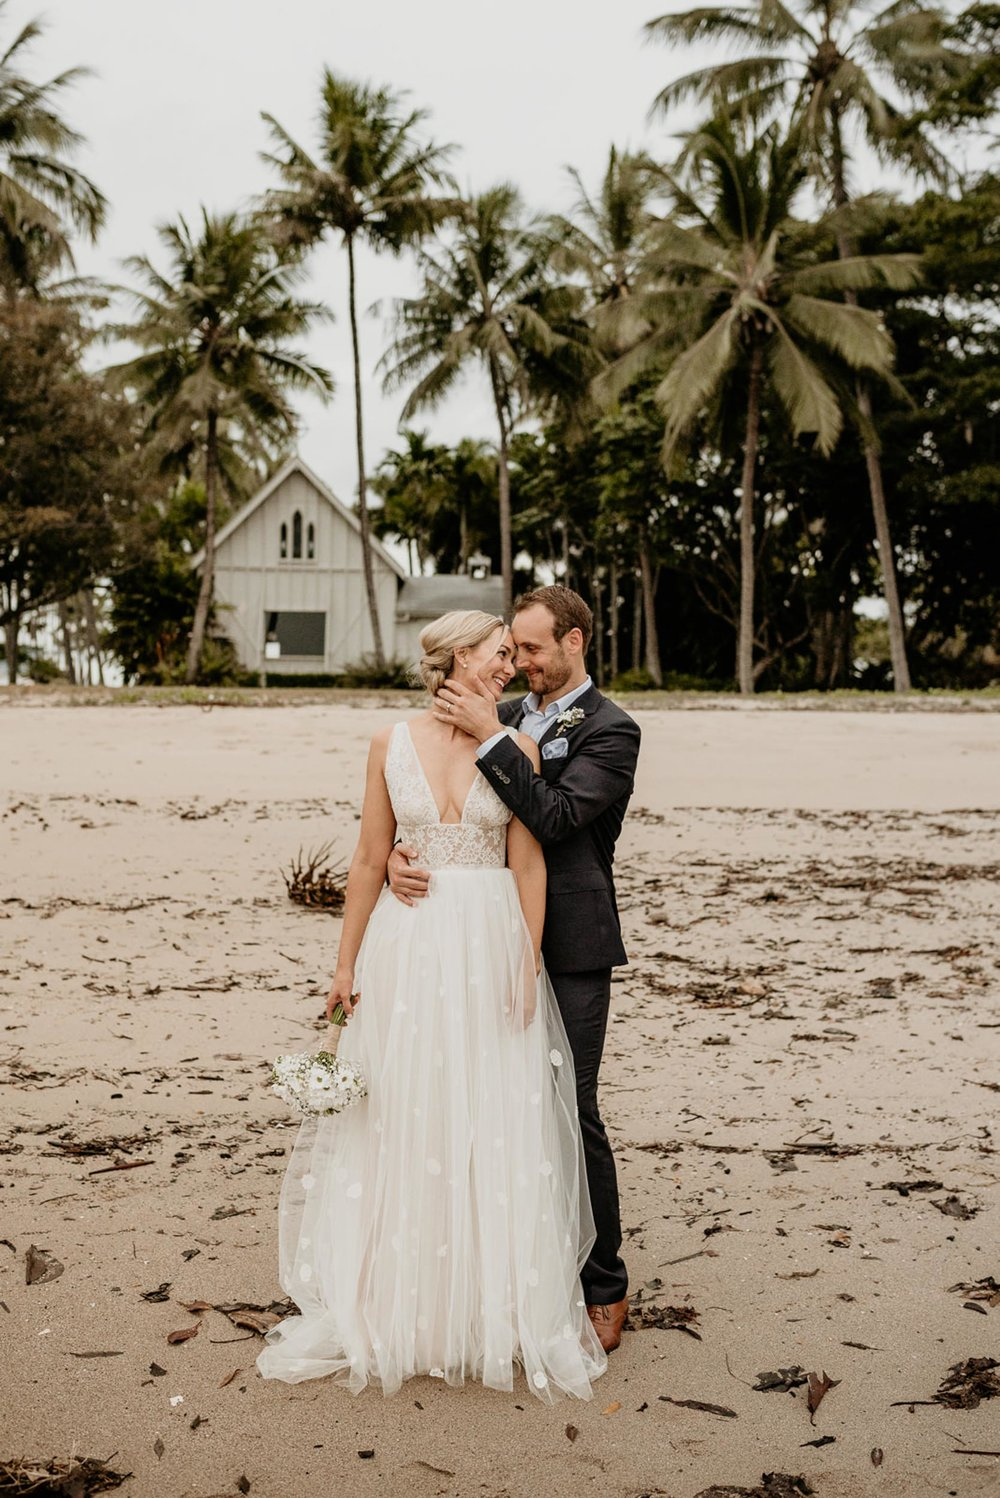 The Raw Photographer - Cairns Wedding Photographer - Port Douglas Little Cove Ceremony- Beach Wedding Photography - Bride Wedding Dress - Sugar Wharf Venue Reception-36.jpg